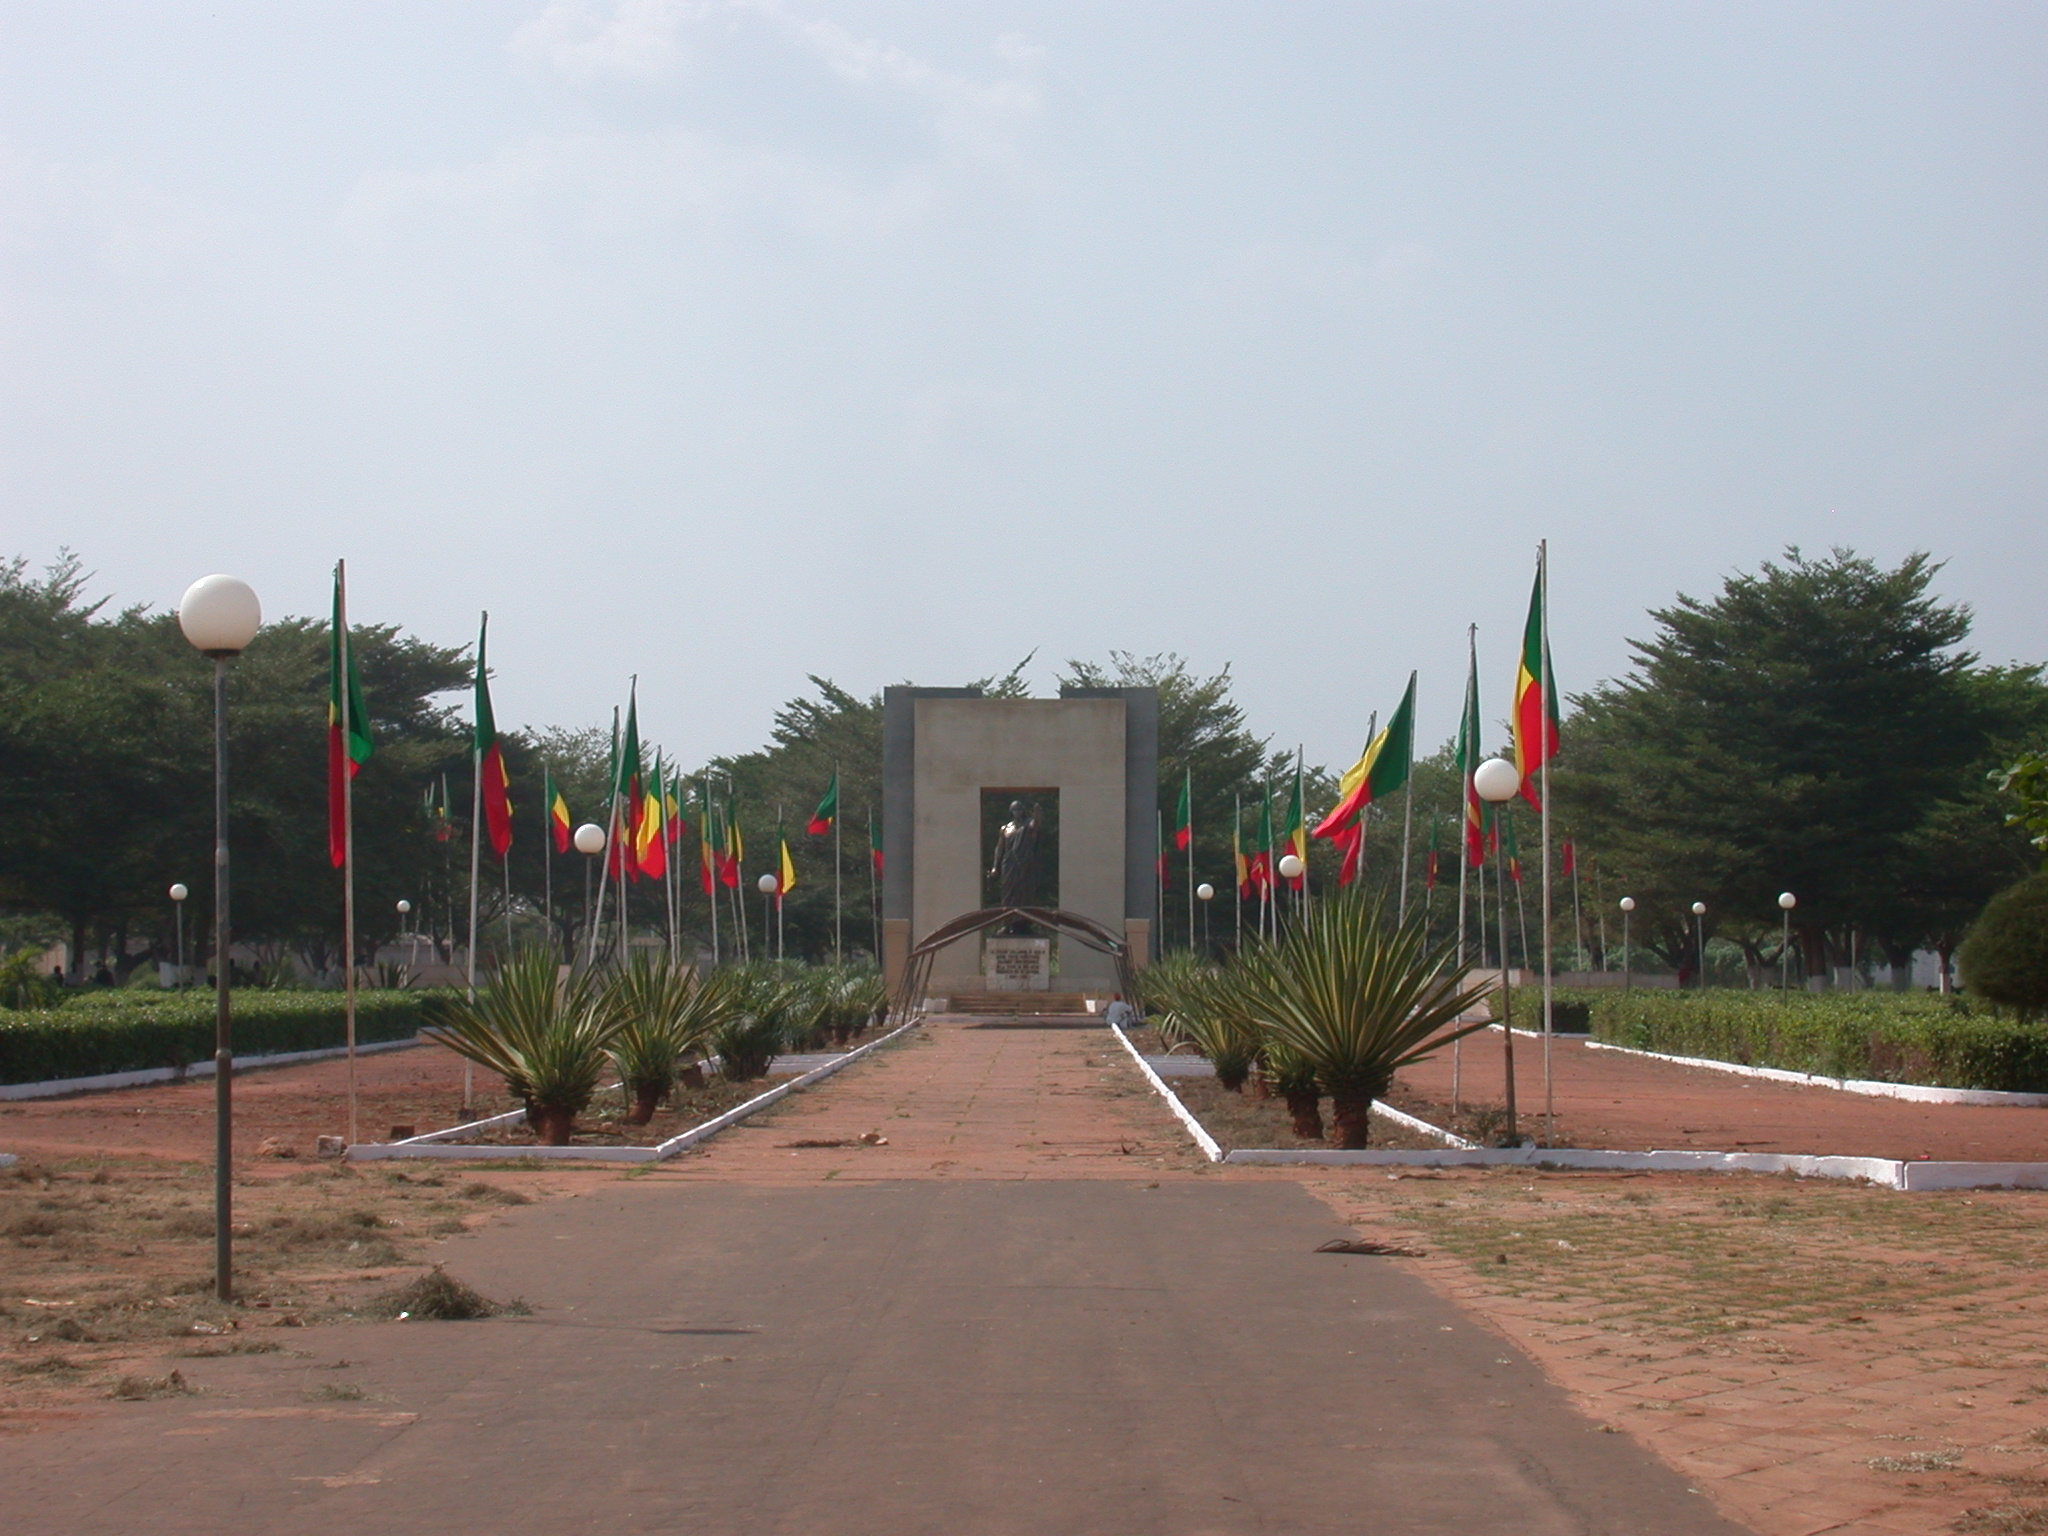 Place Goho and Statue of King Gbehanzin, Abomey, Benin